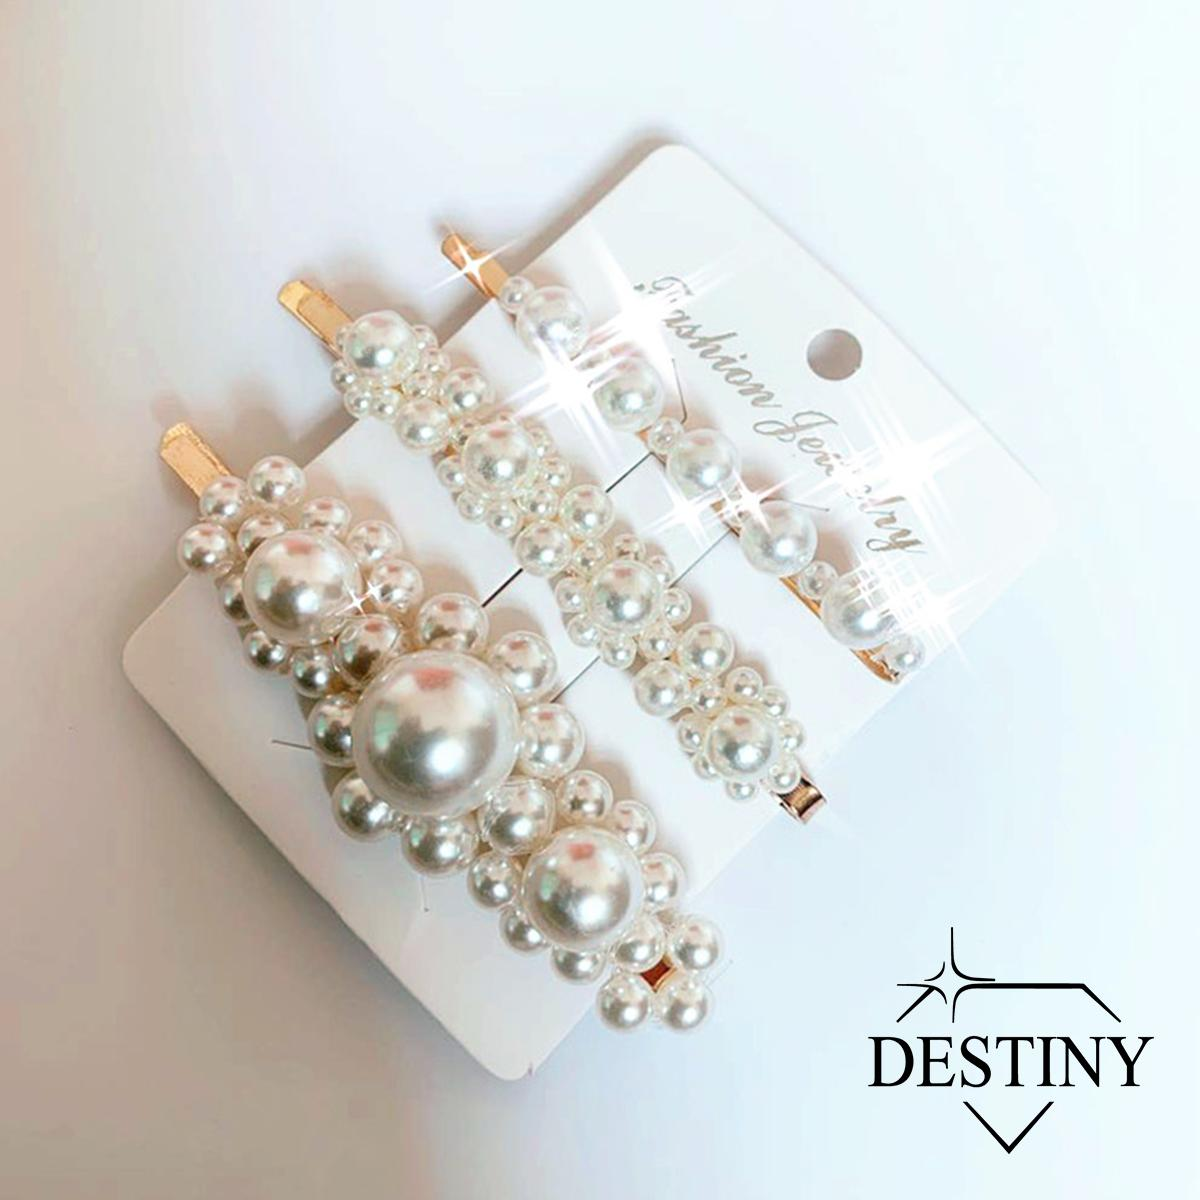 Korea Women Shiny Rhinestones Big Small Star Hairpins Hair Accessories For Girls Metal Gold Silver Hair Clips Hairgrip Jewelry Sets & More Hair Jewelry